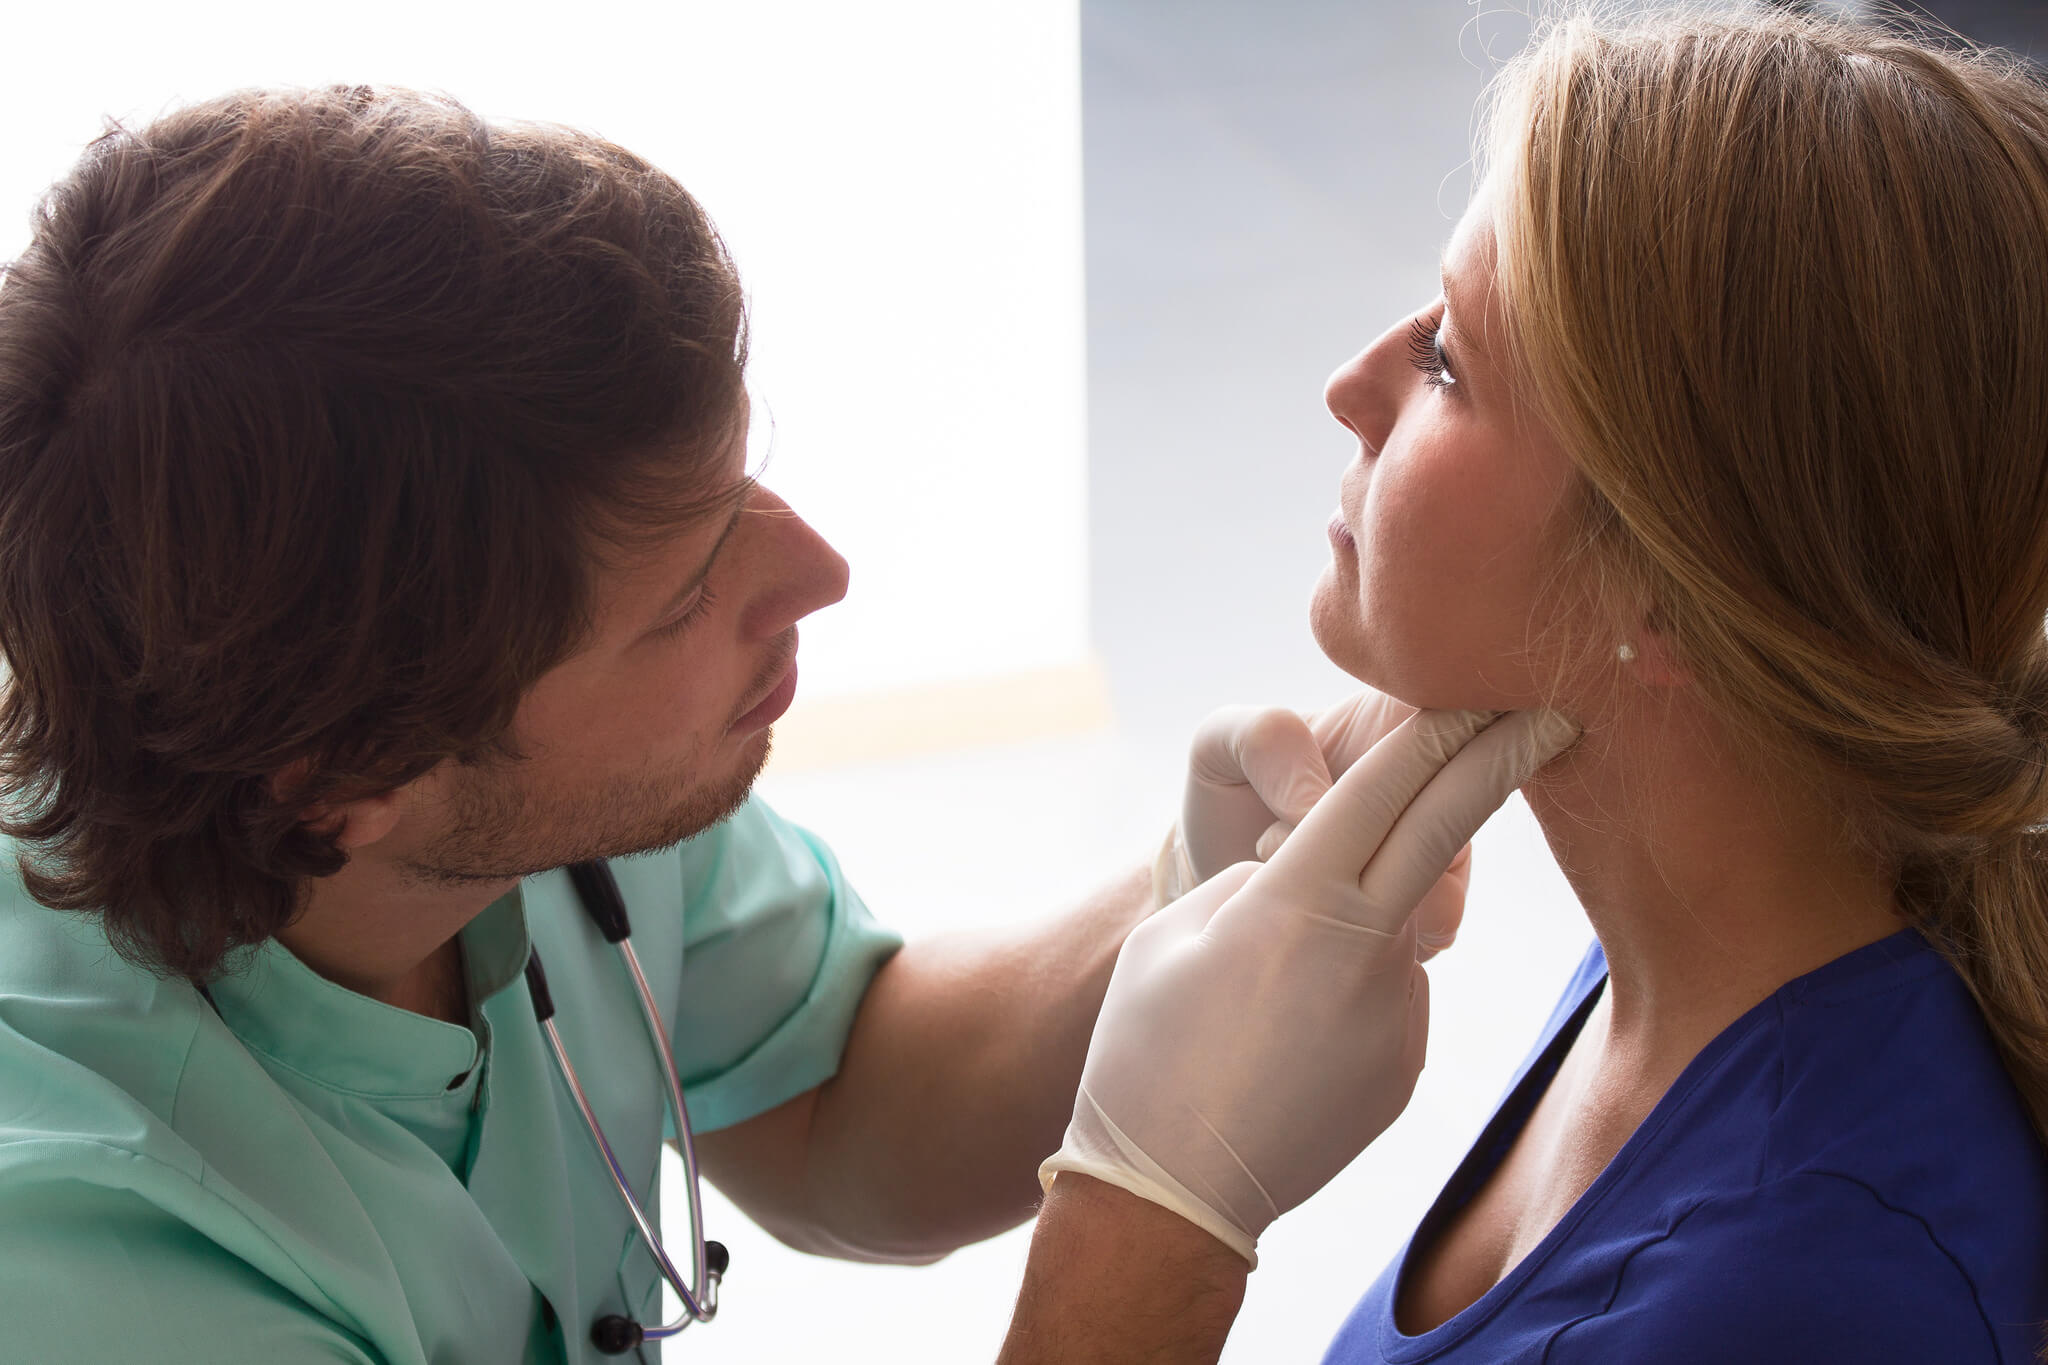 What to Know About Neck Injuries After a Car Accident